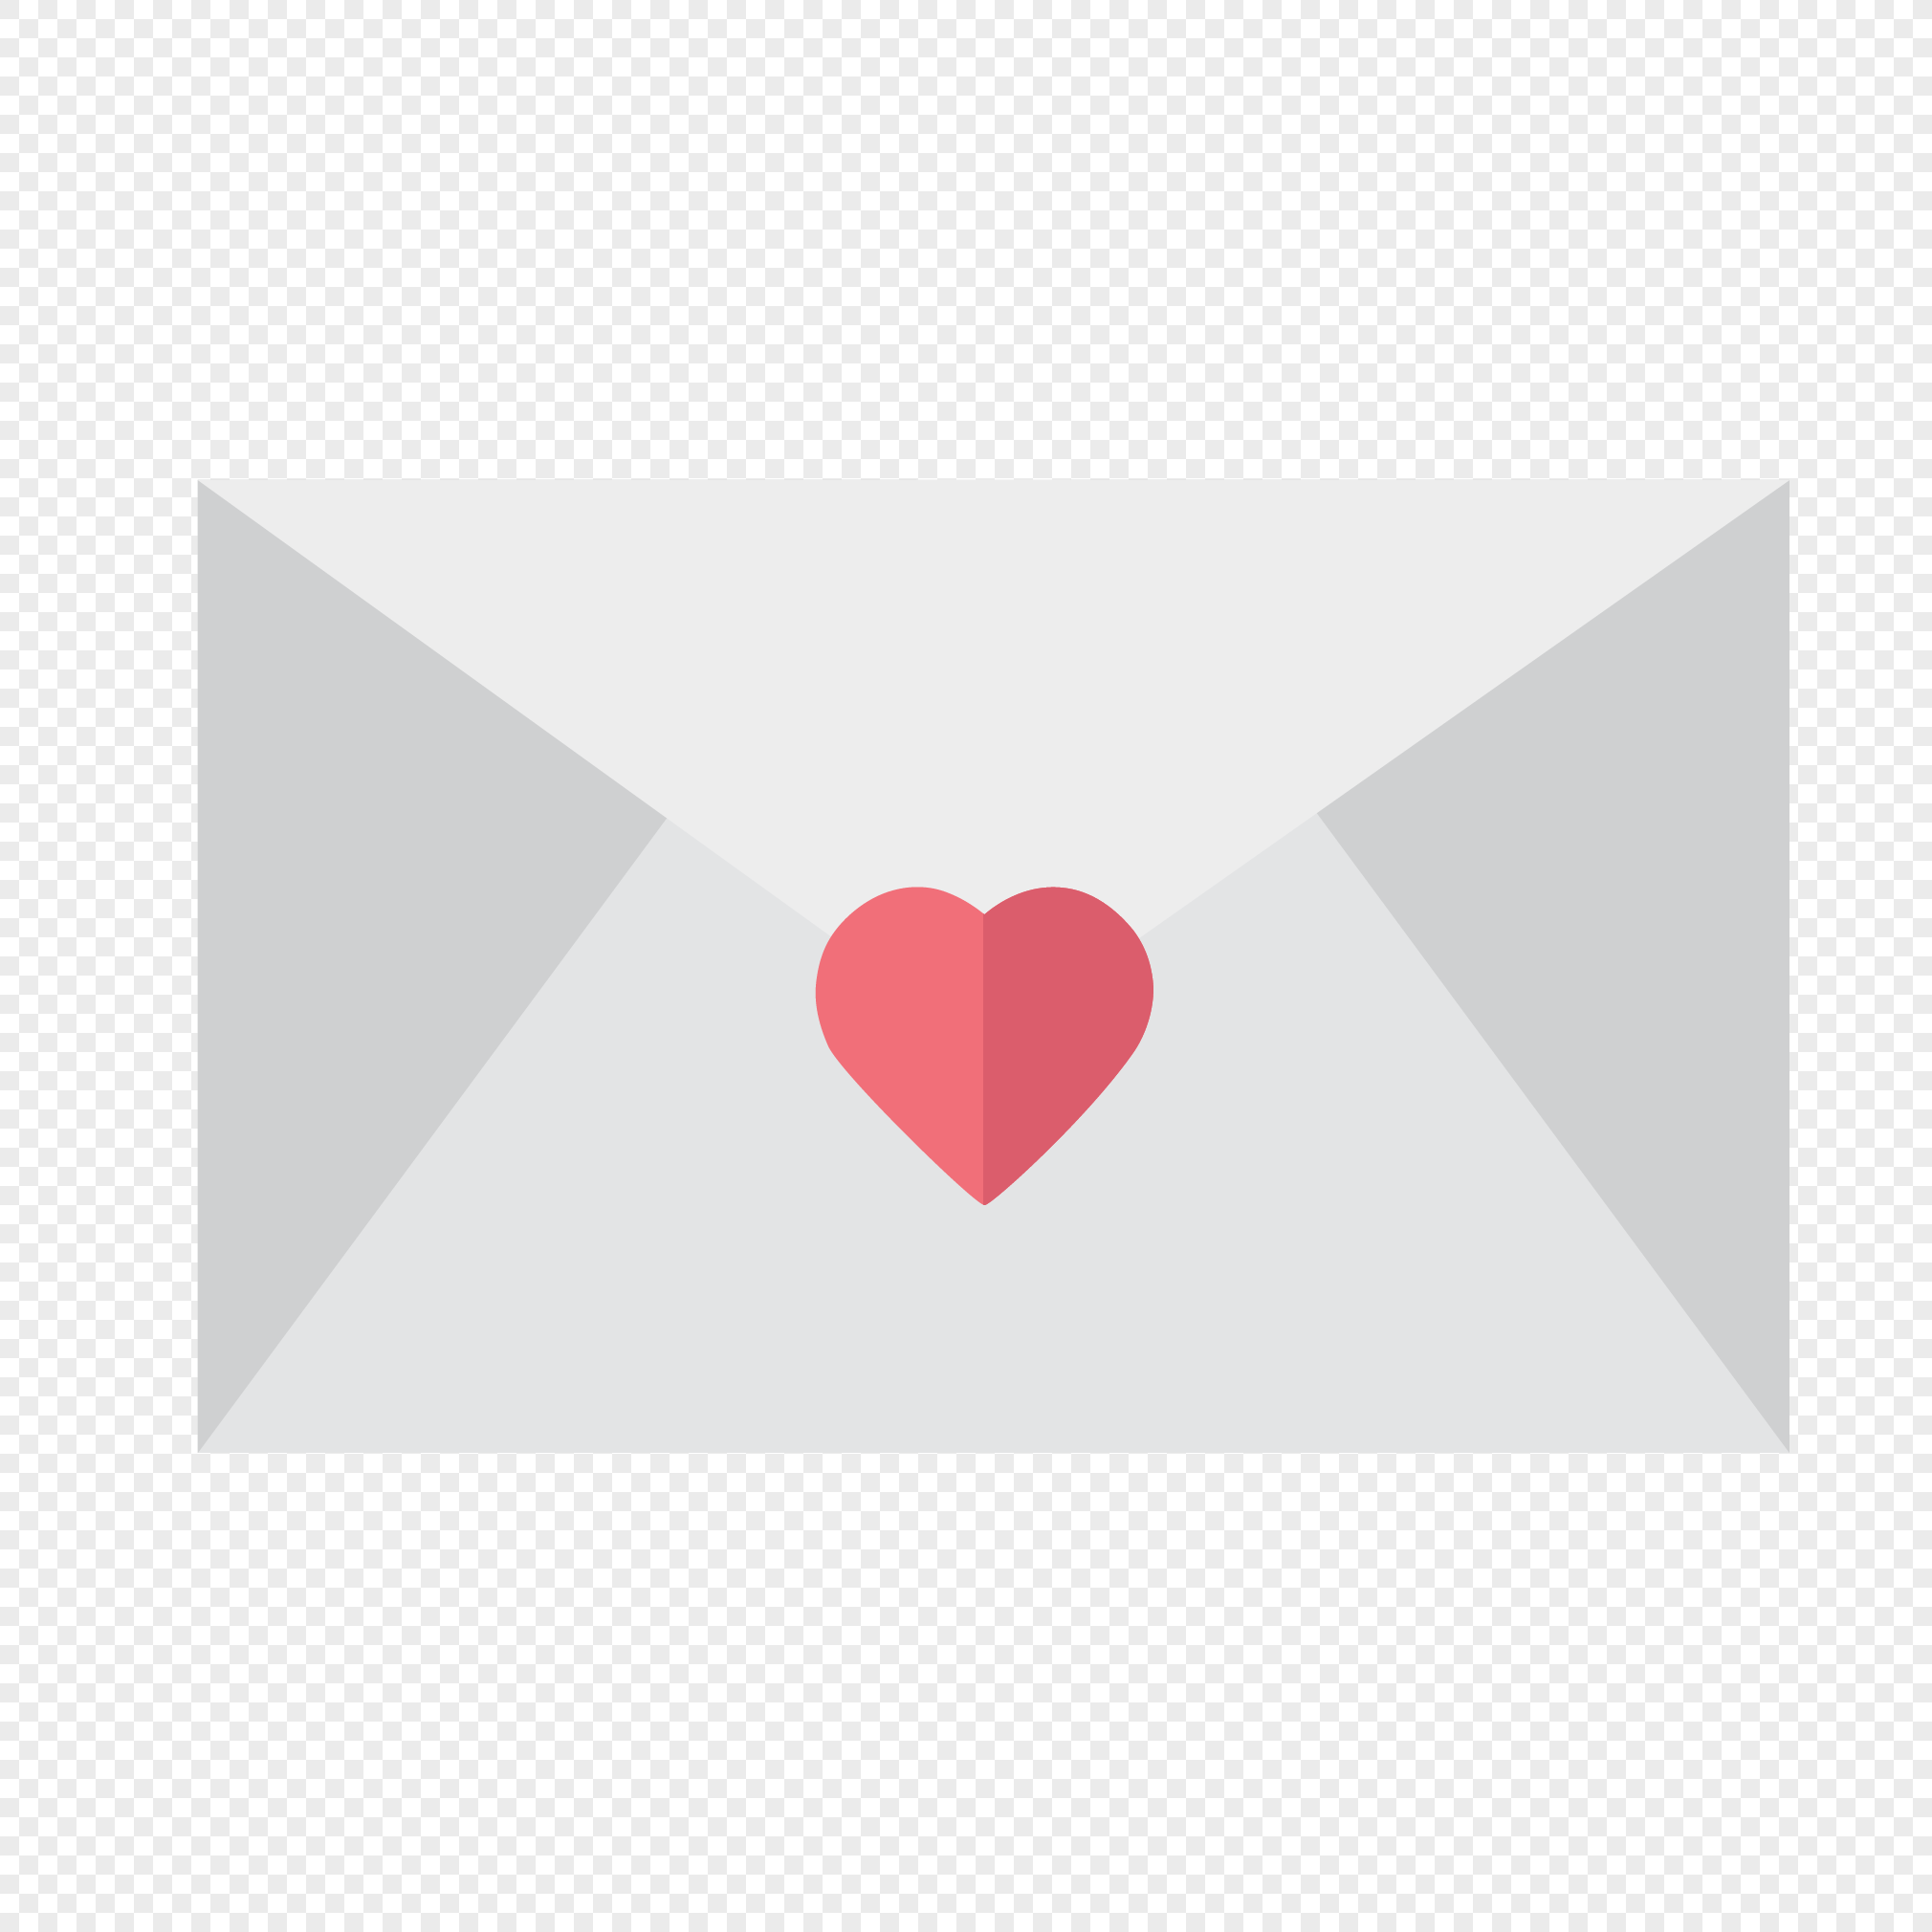 Wedding Love Letter Png Image Picture Free Download